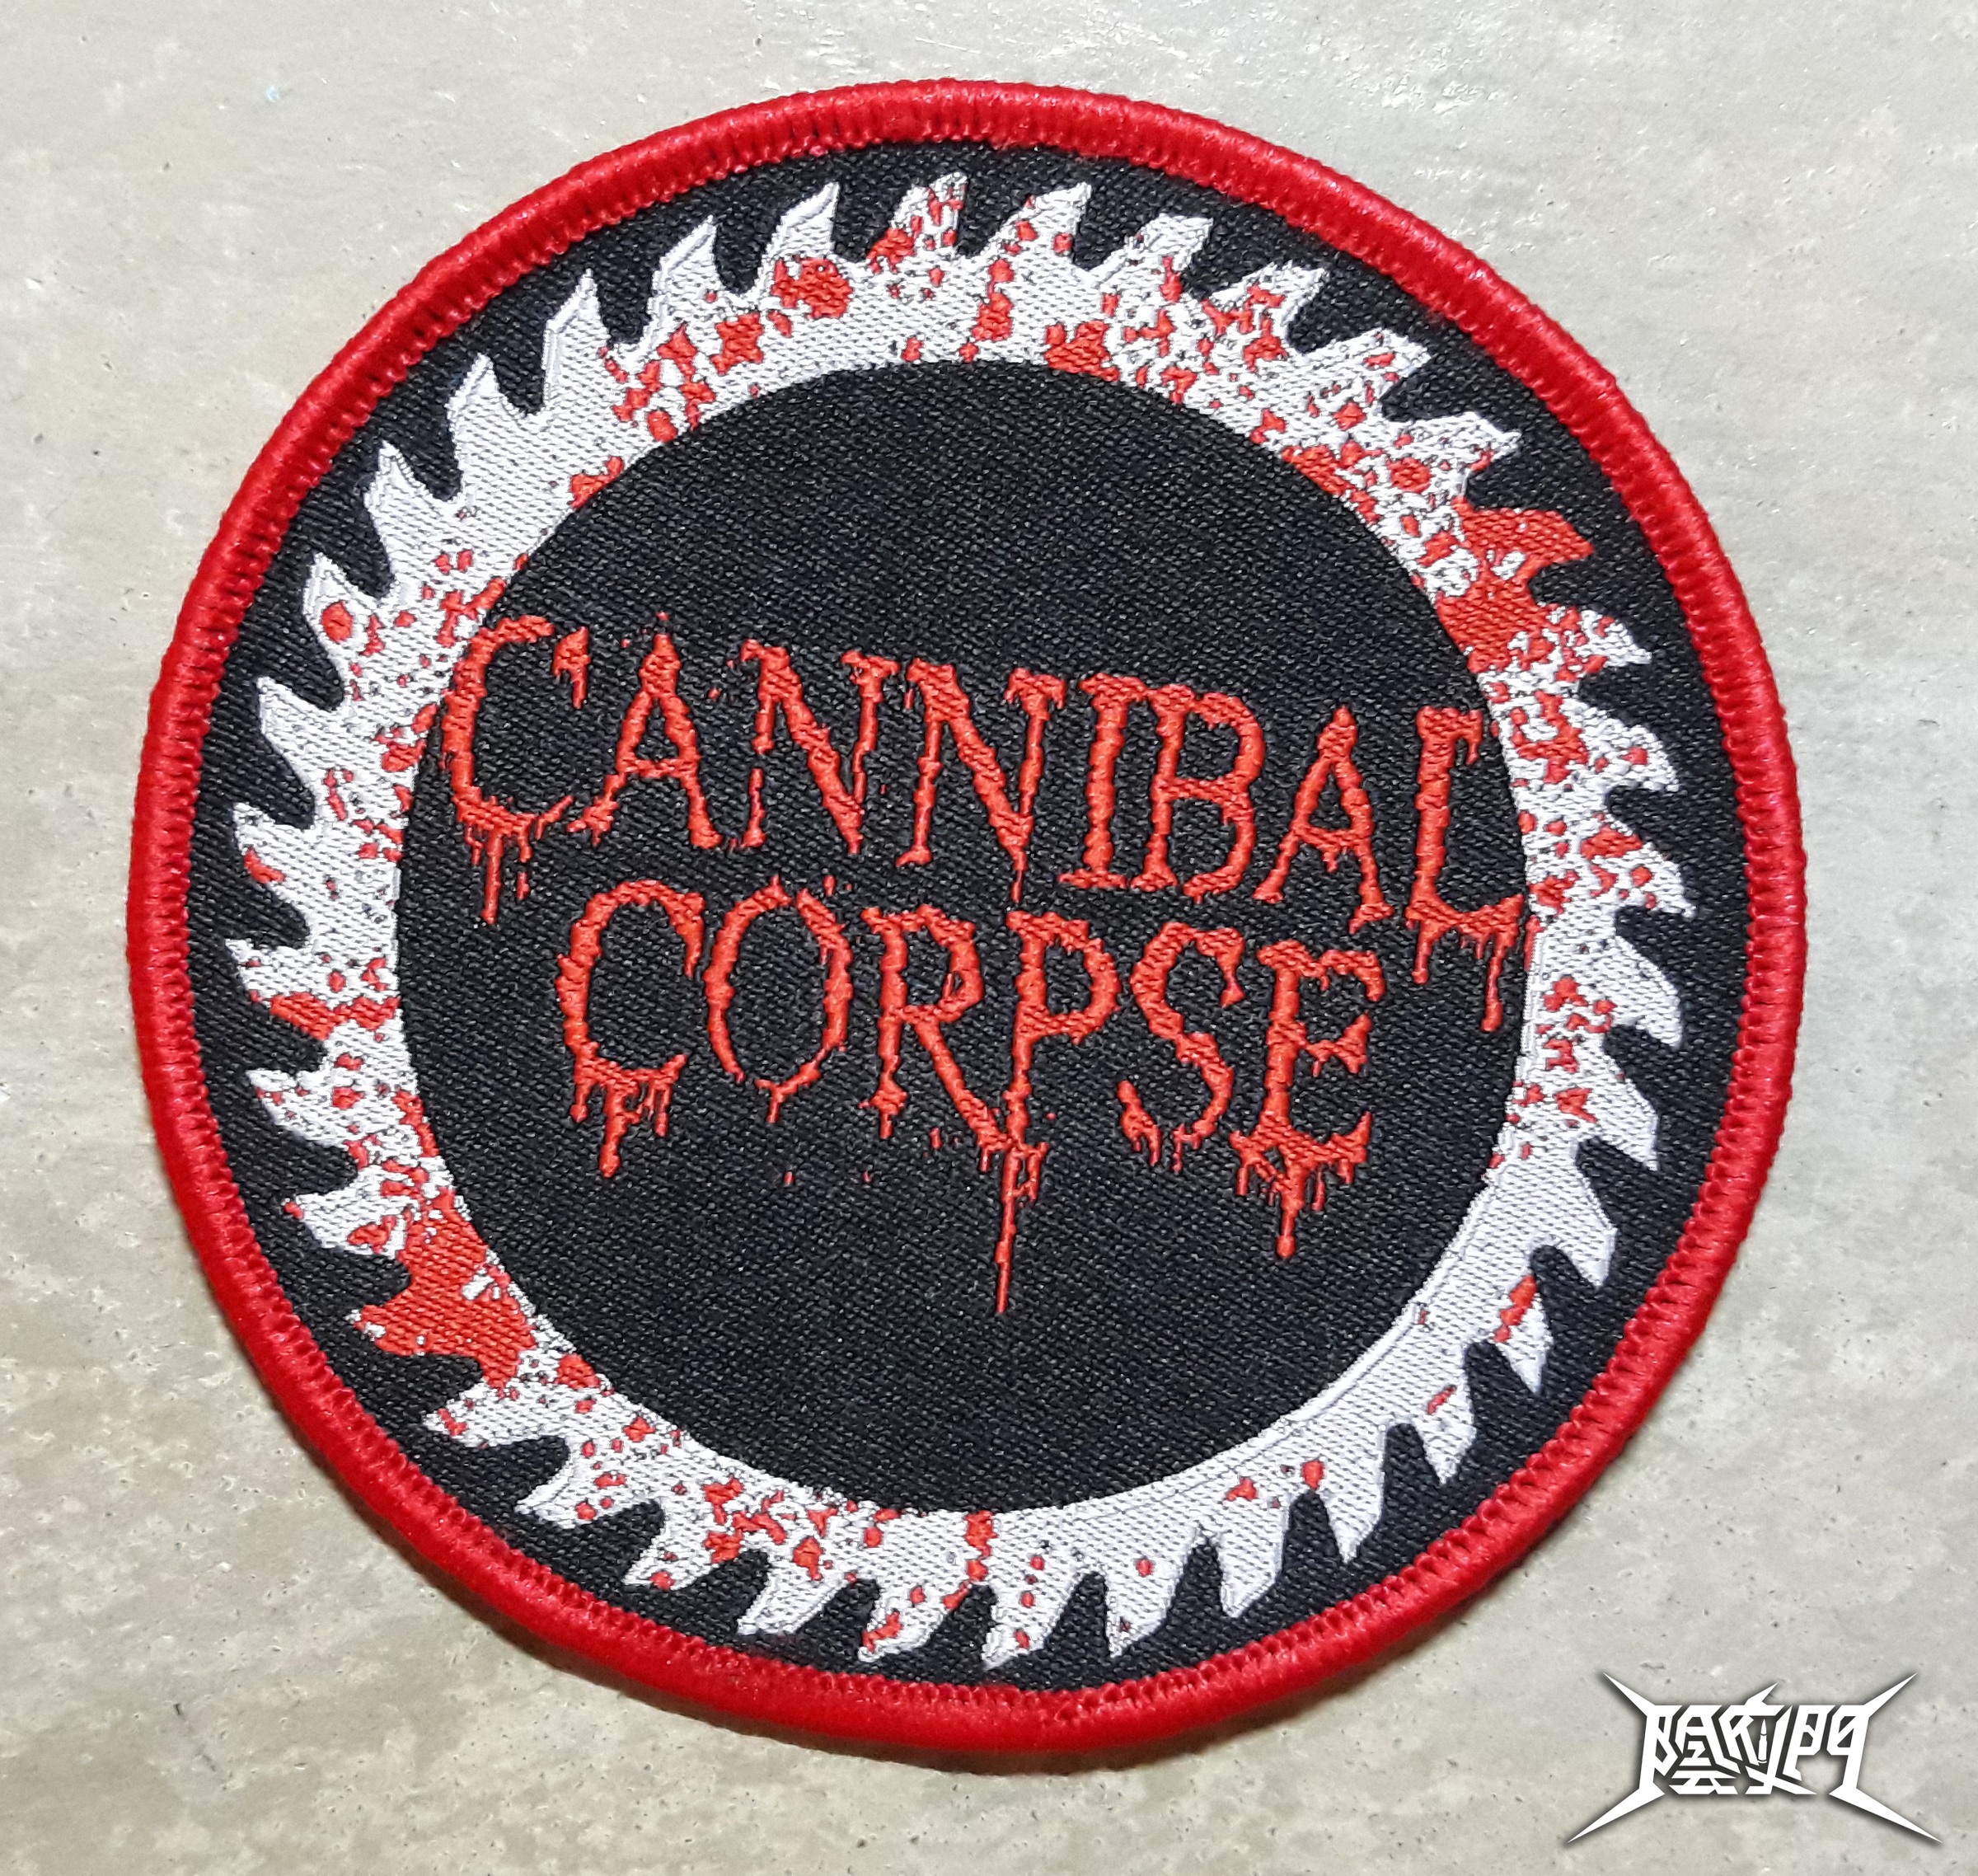 CANNIBAL CORPSE Bloody Logo Round.jpg